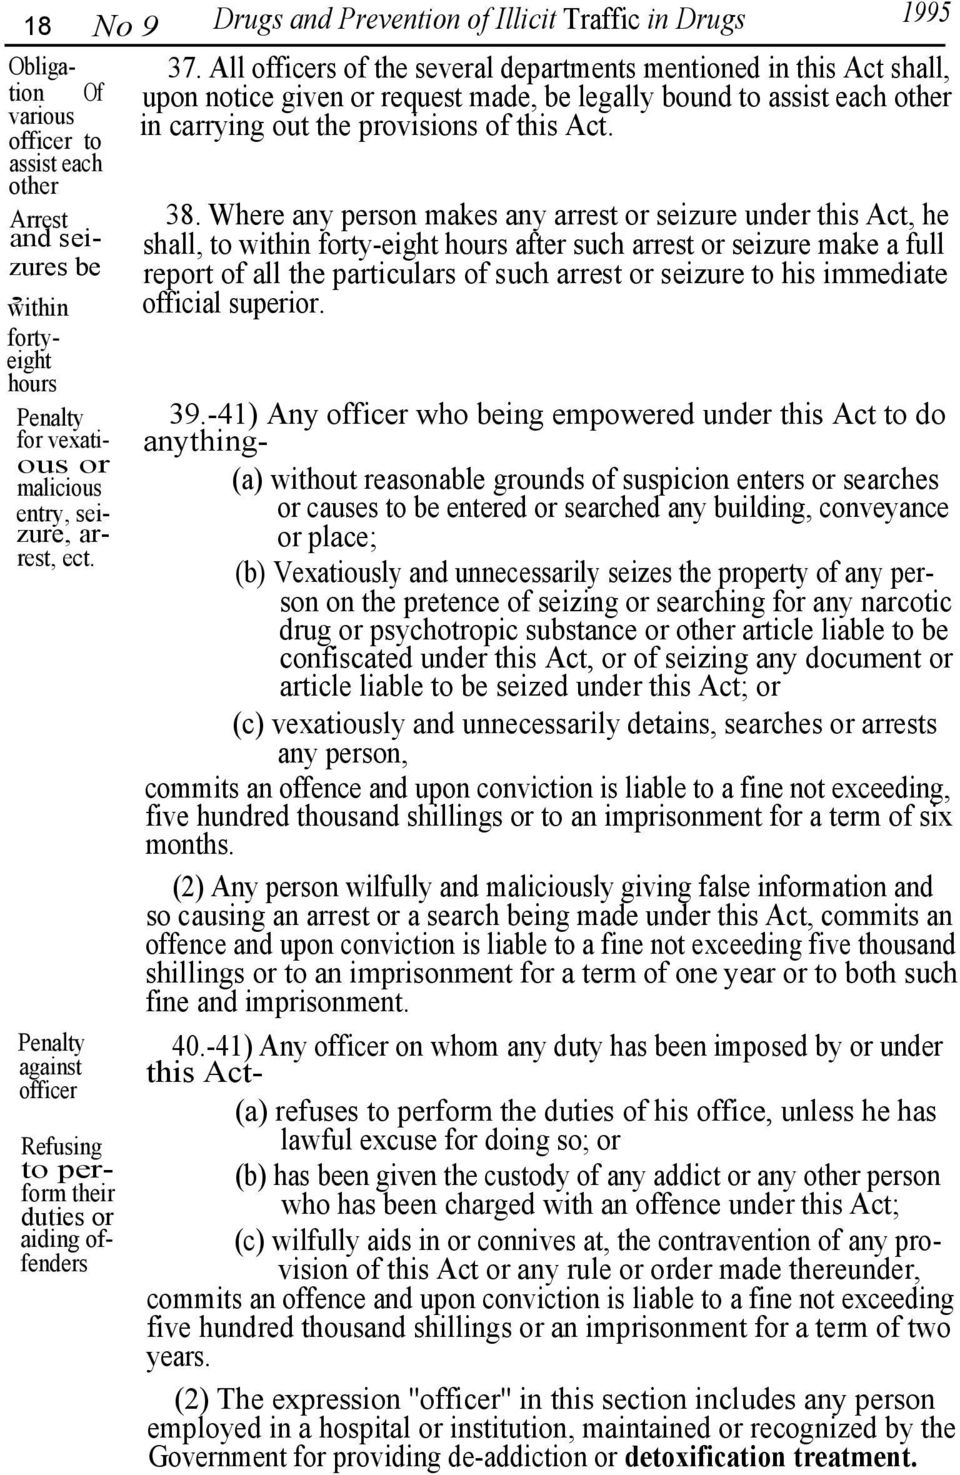 All officers of the several departments mentioned in this Act shall, upon notice given or request made, be legally bound to assist each other in carrying out the provisions of this Act. 38.